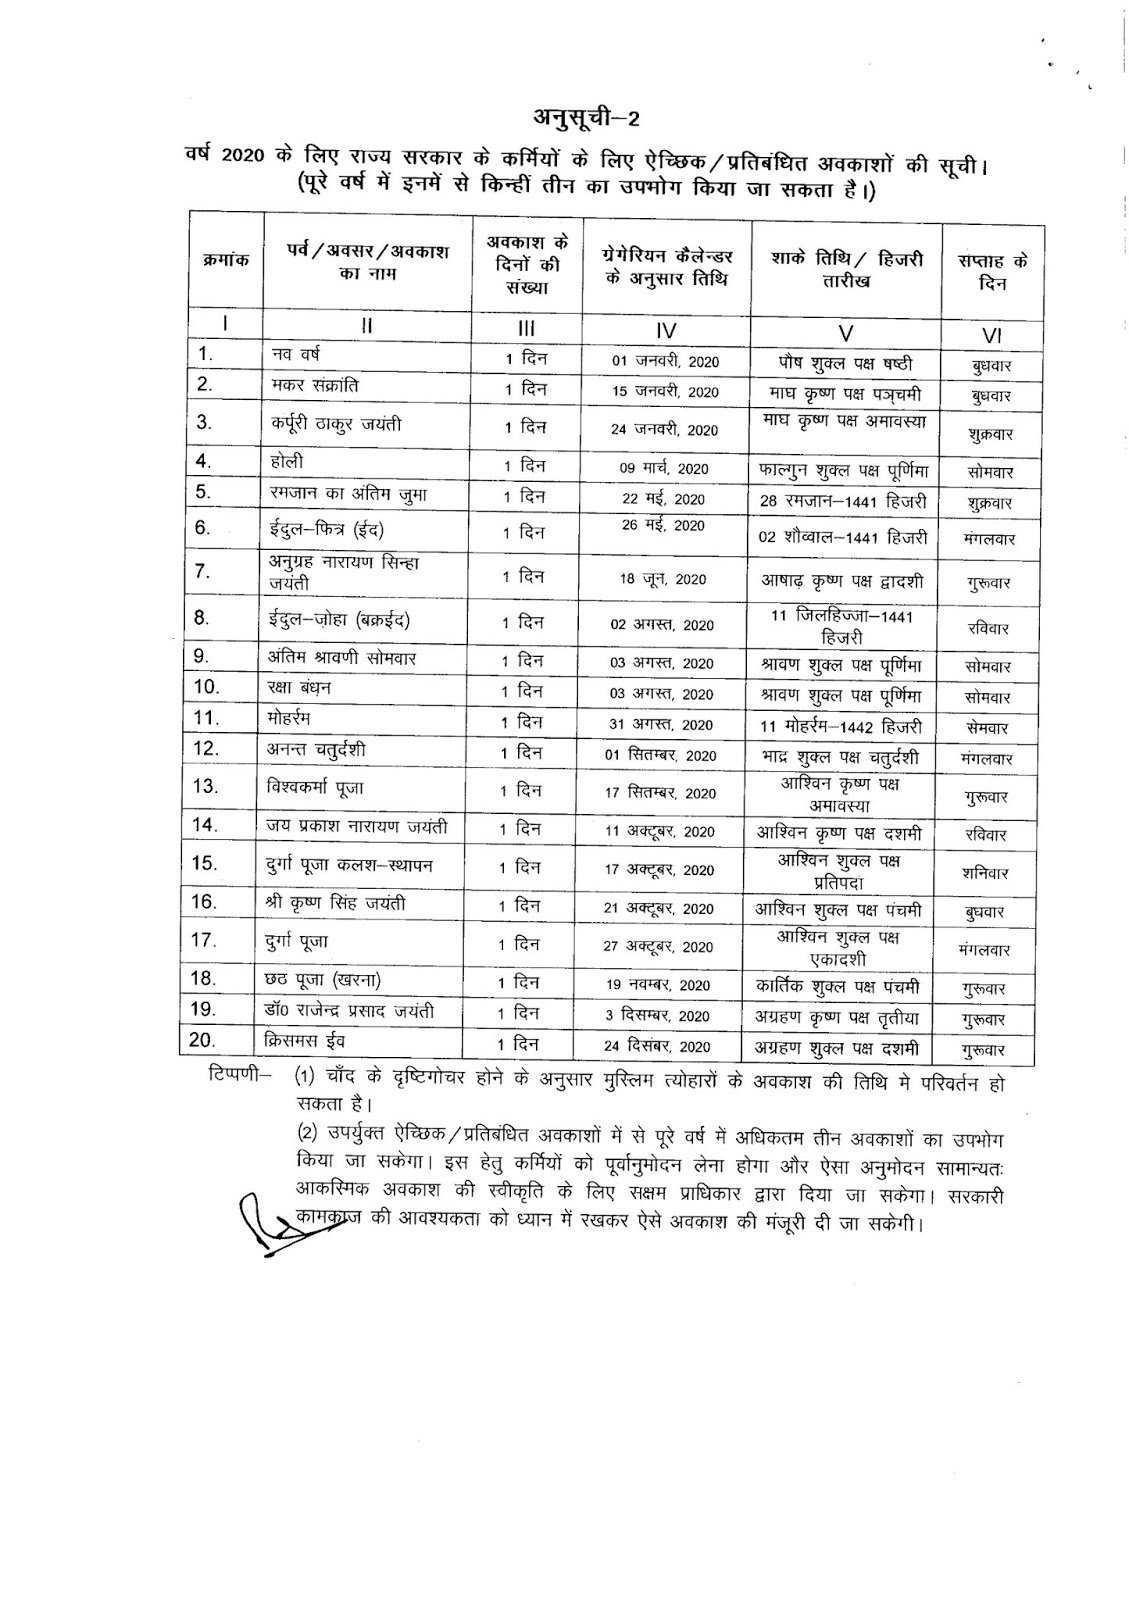 Bihar Government Calendar 2020 #educratsweb intended for Bihar Govt Calendar